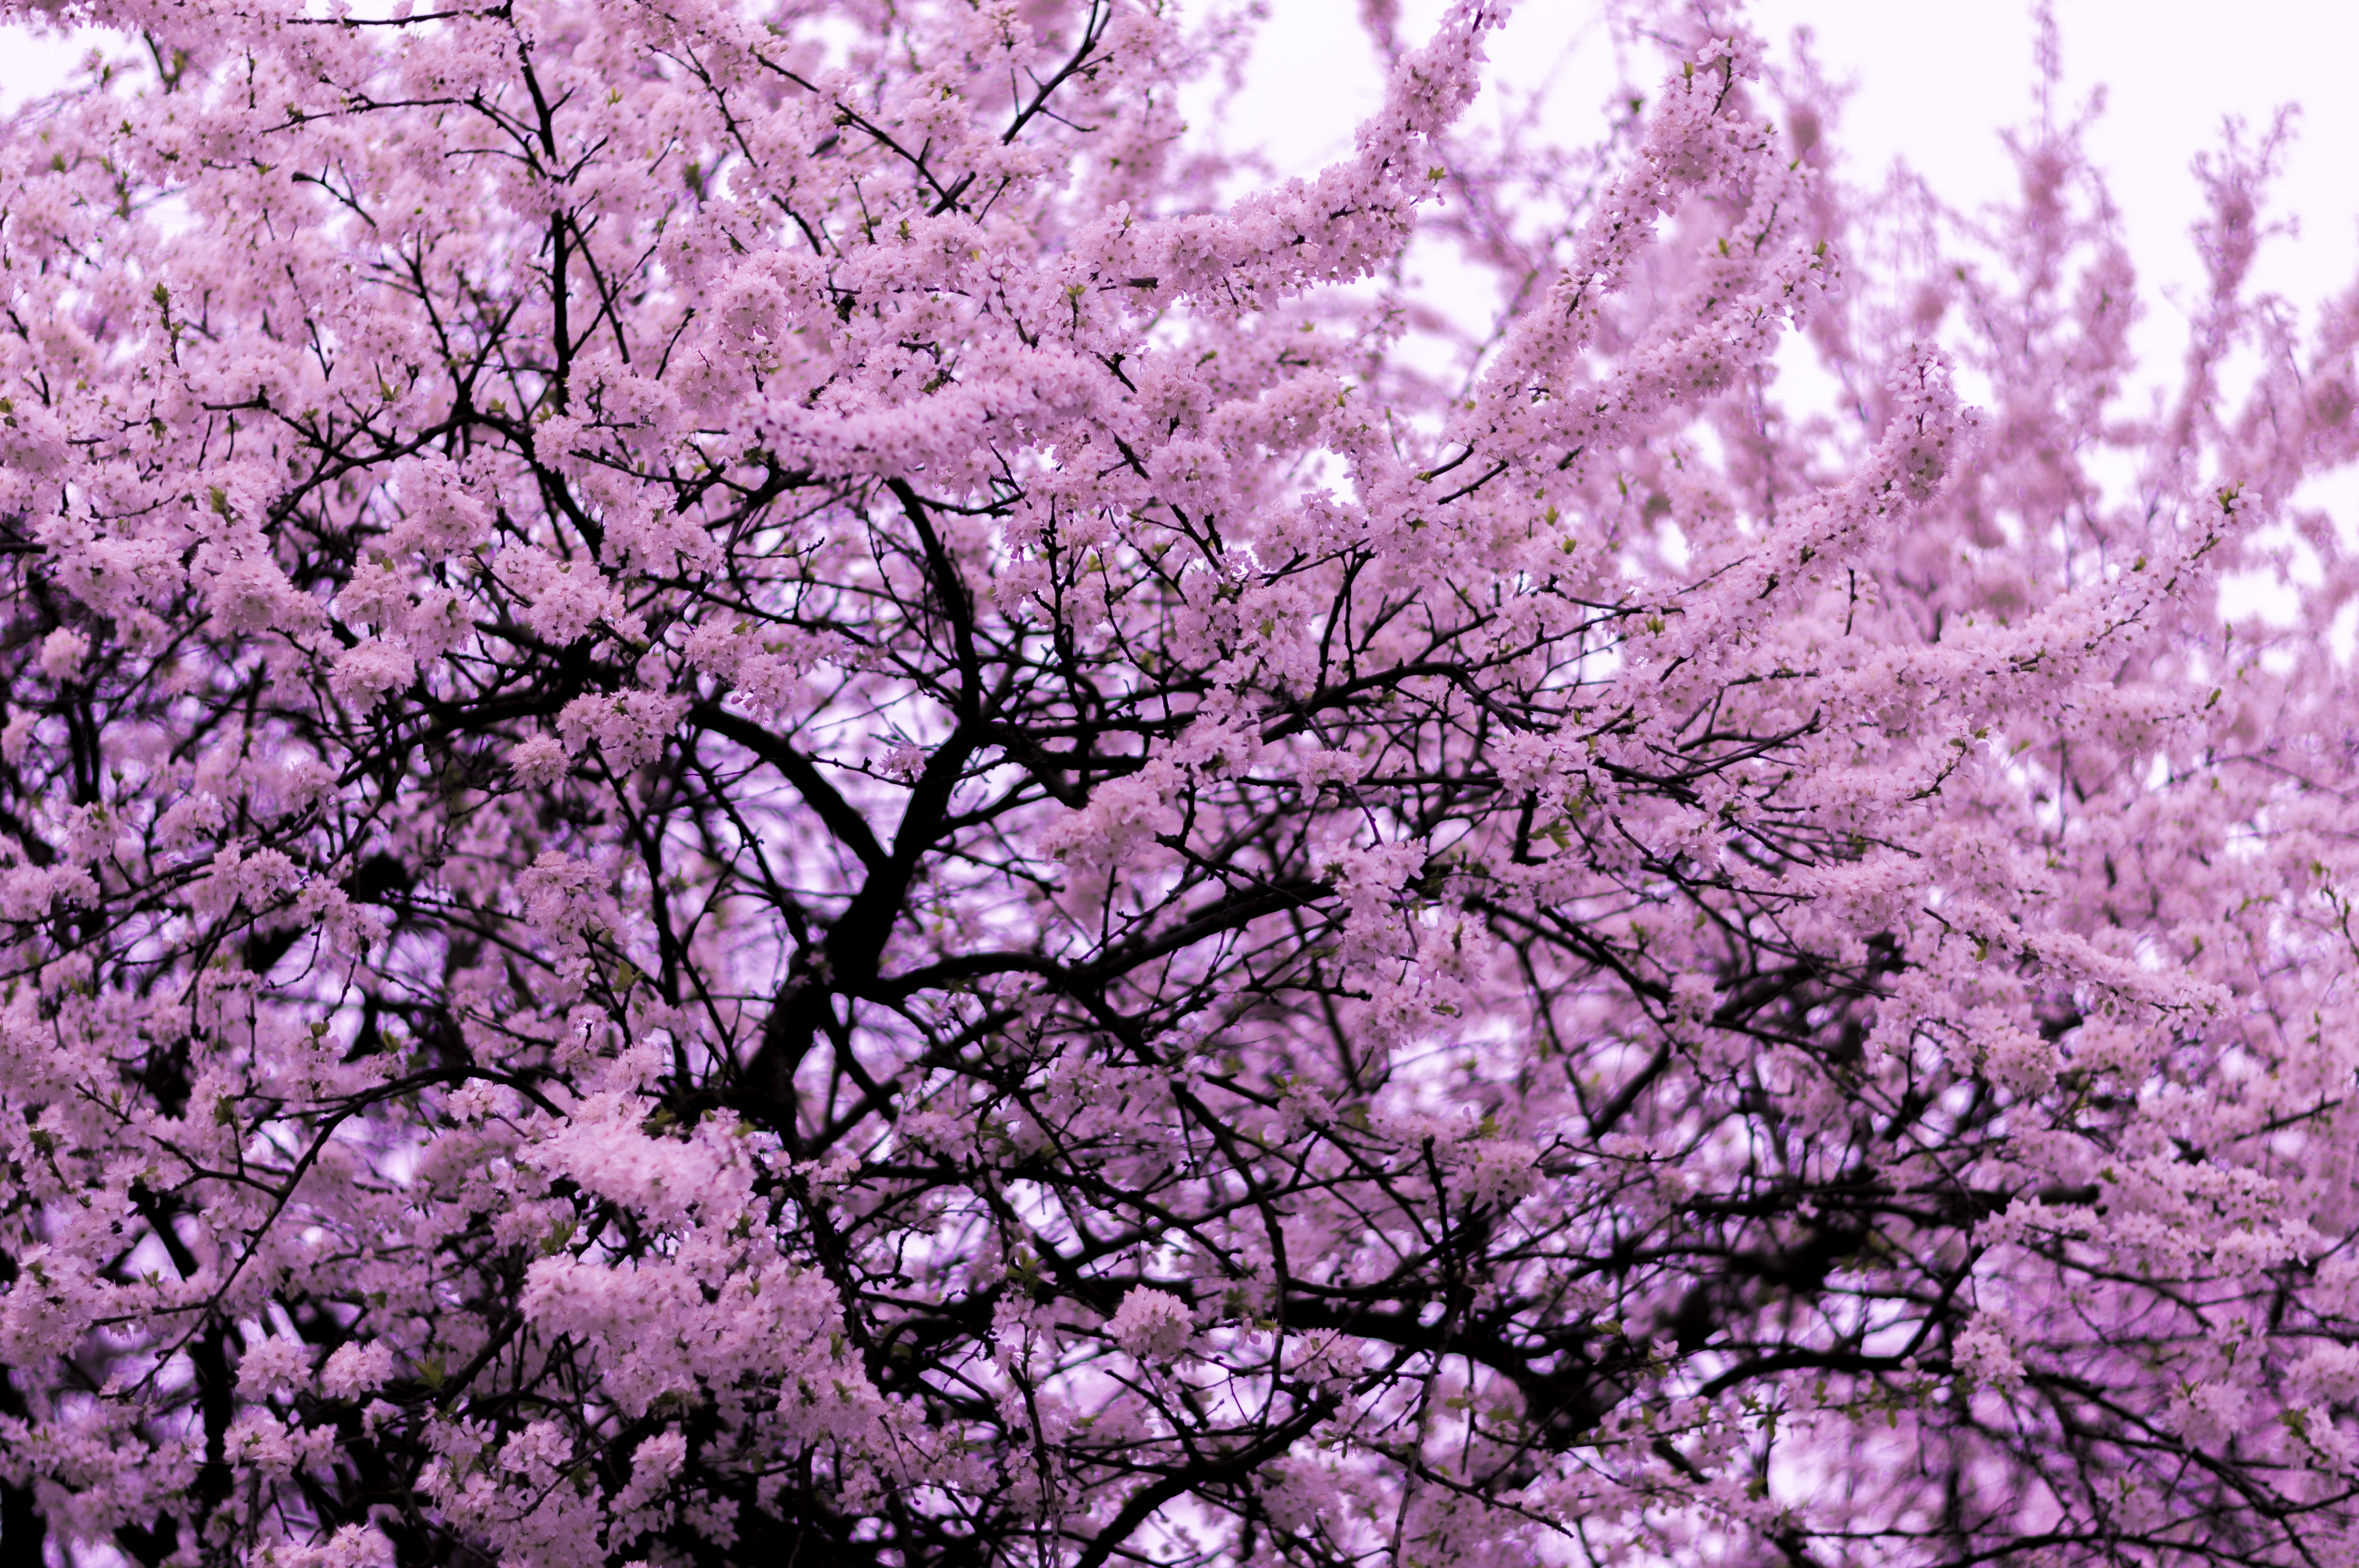 Tree with thick pink blossom blooming in Spring in Bucharest